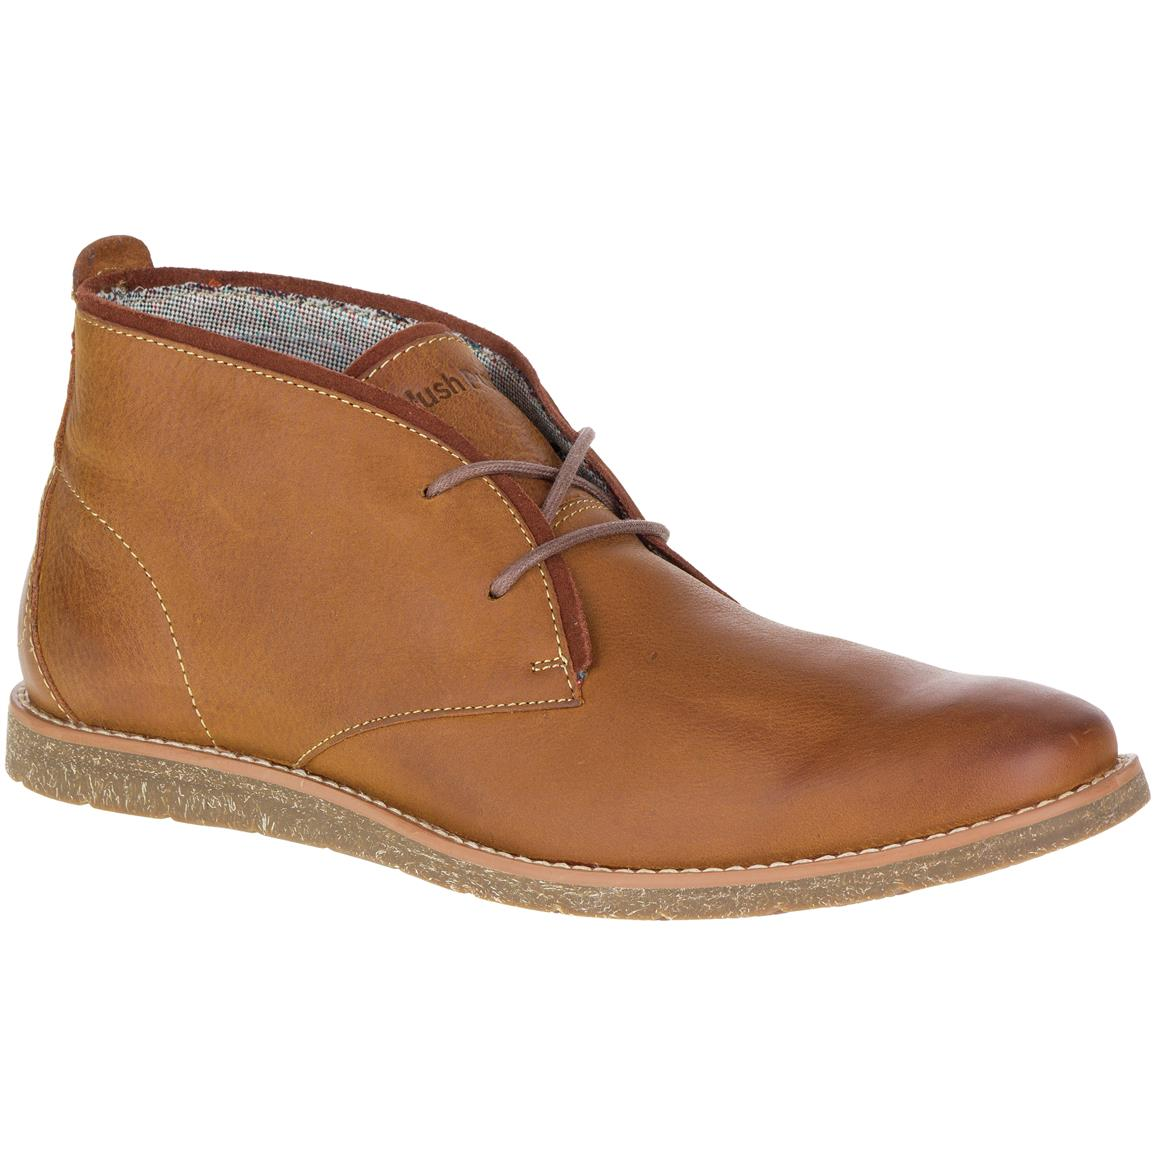 Hush Puppies Men's  Roland Jester Chukka Boots, Tan Leather